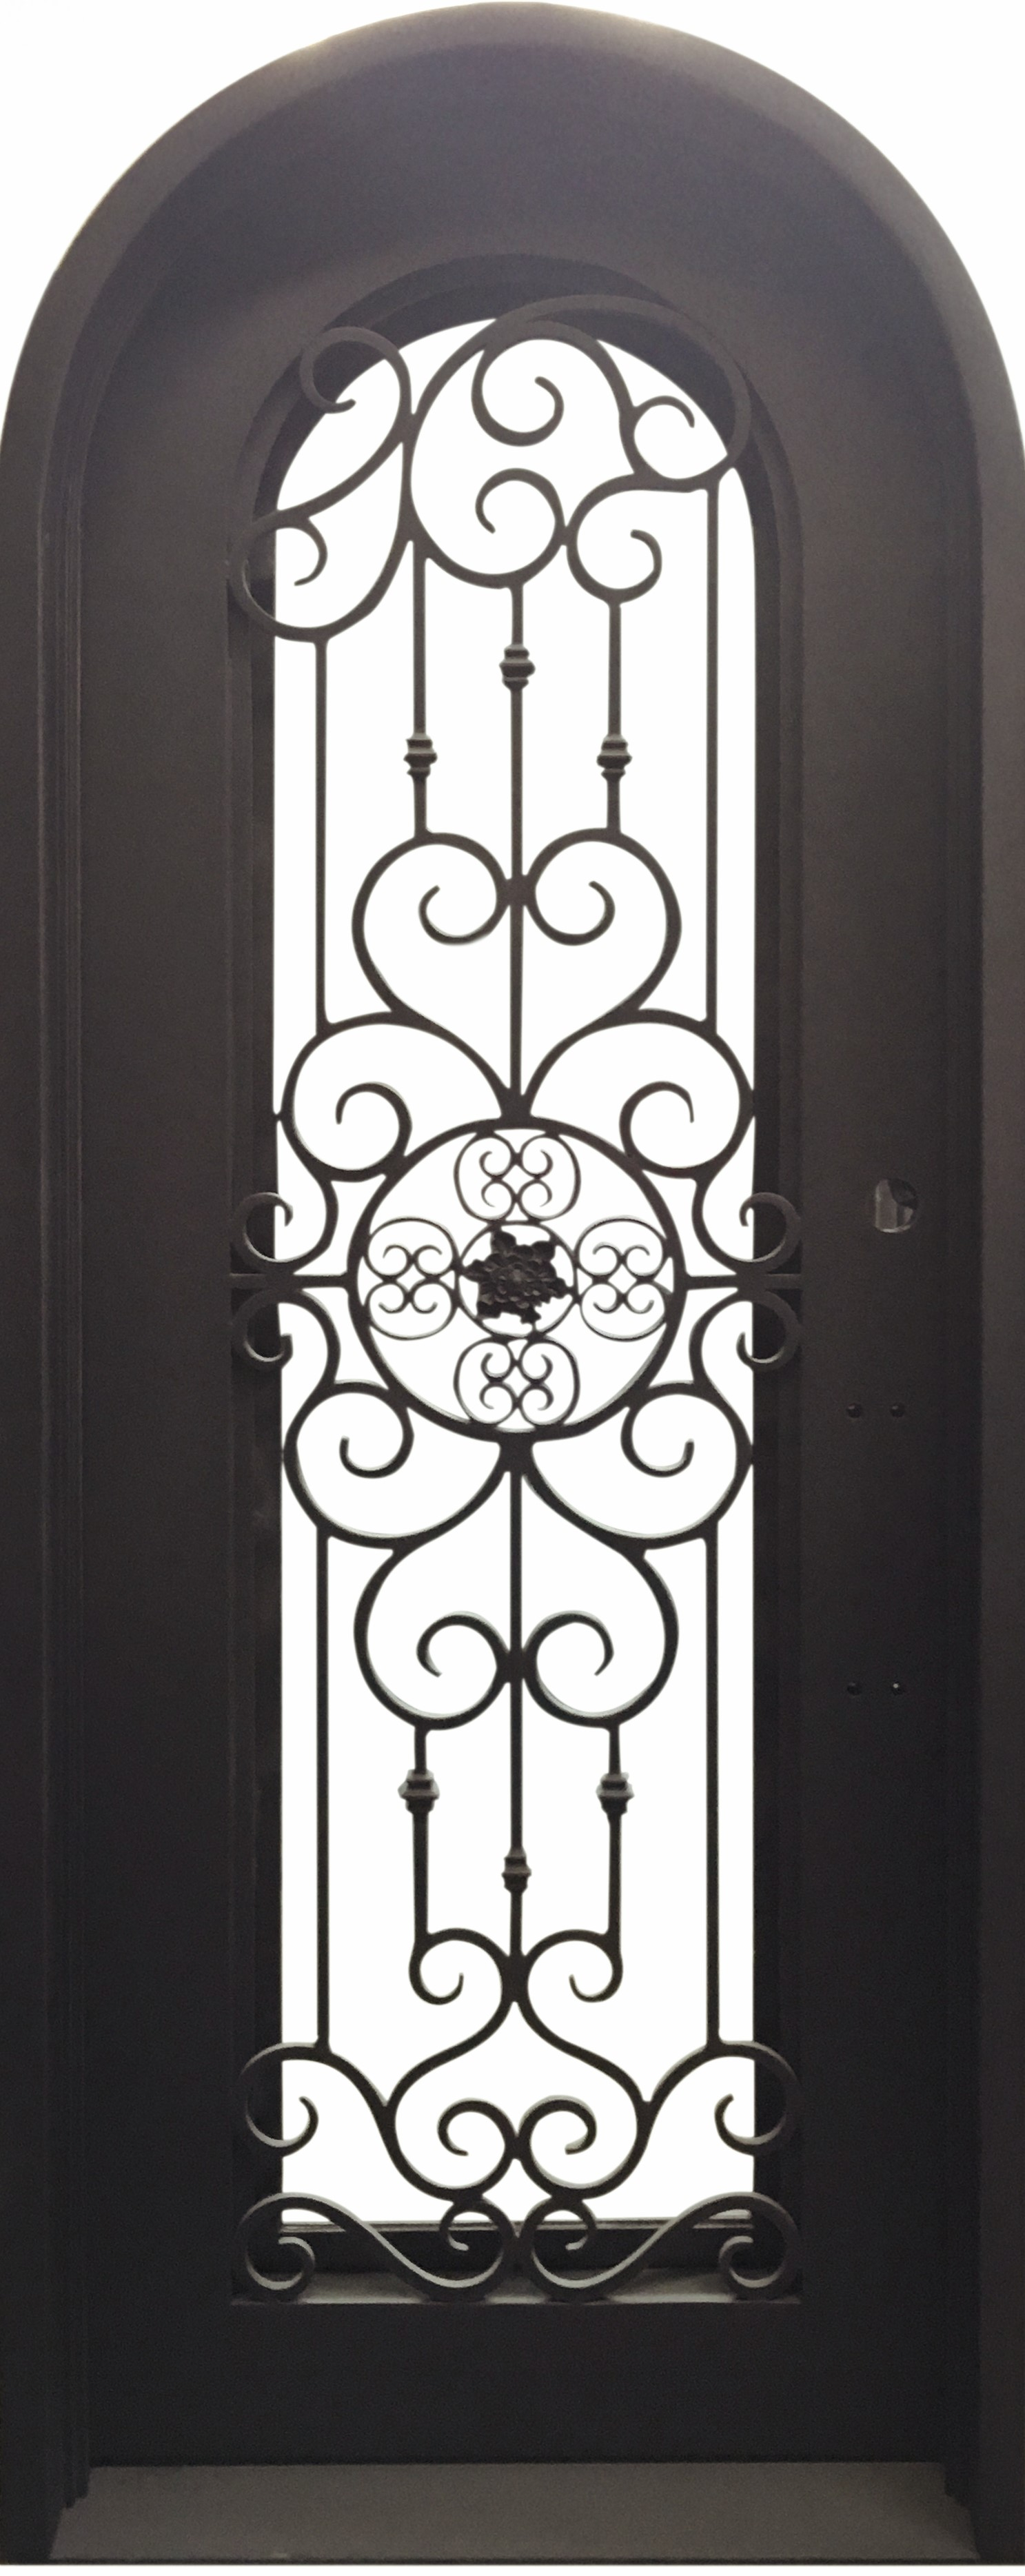 With Luxury Wrought Iron Entry Doors, You Can Add Beauty And Value To Your  Home. Your Guests Or Clients Will Compliment On Your Memorable Entrance.